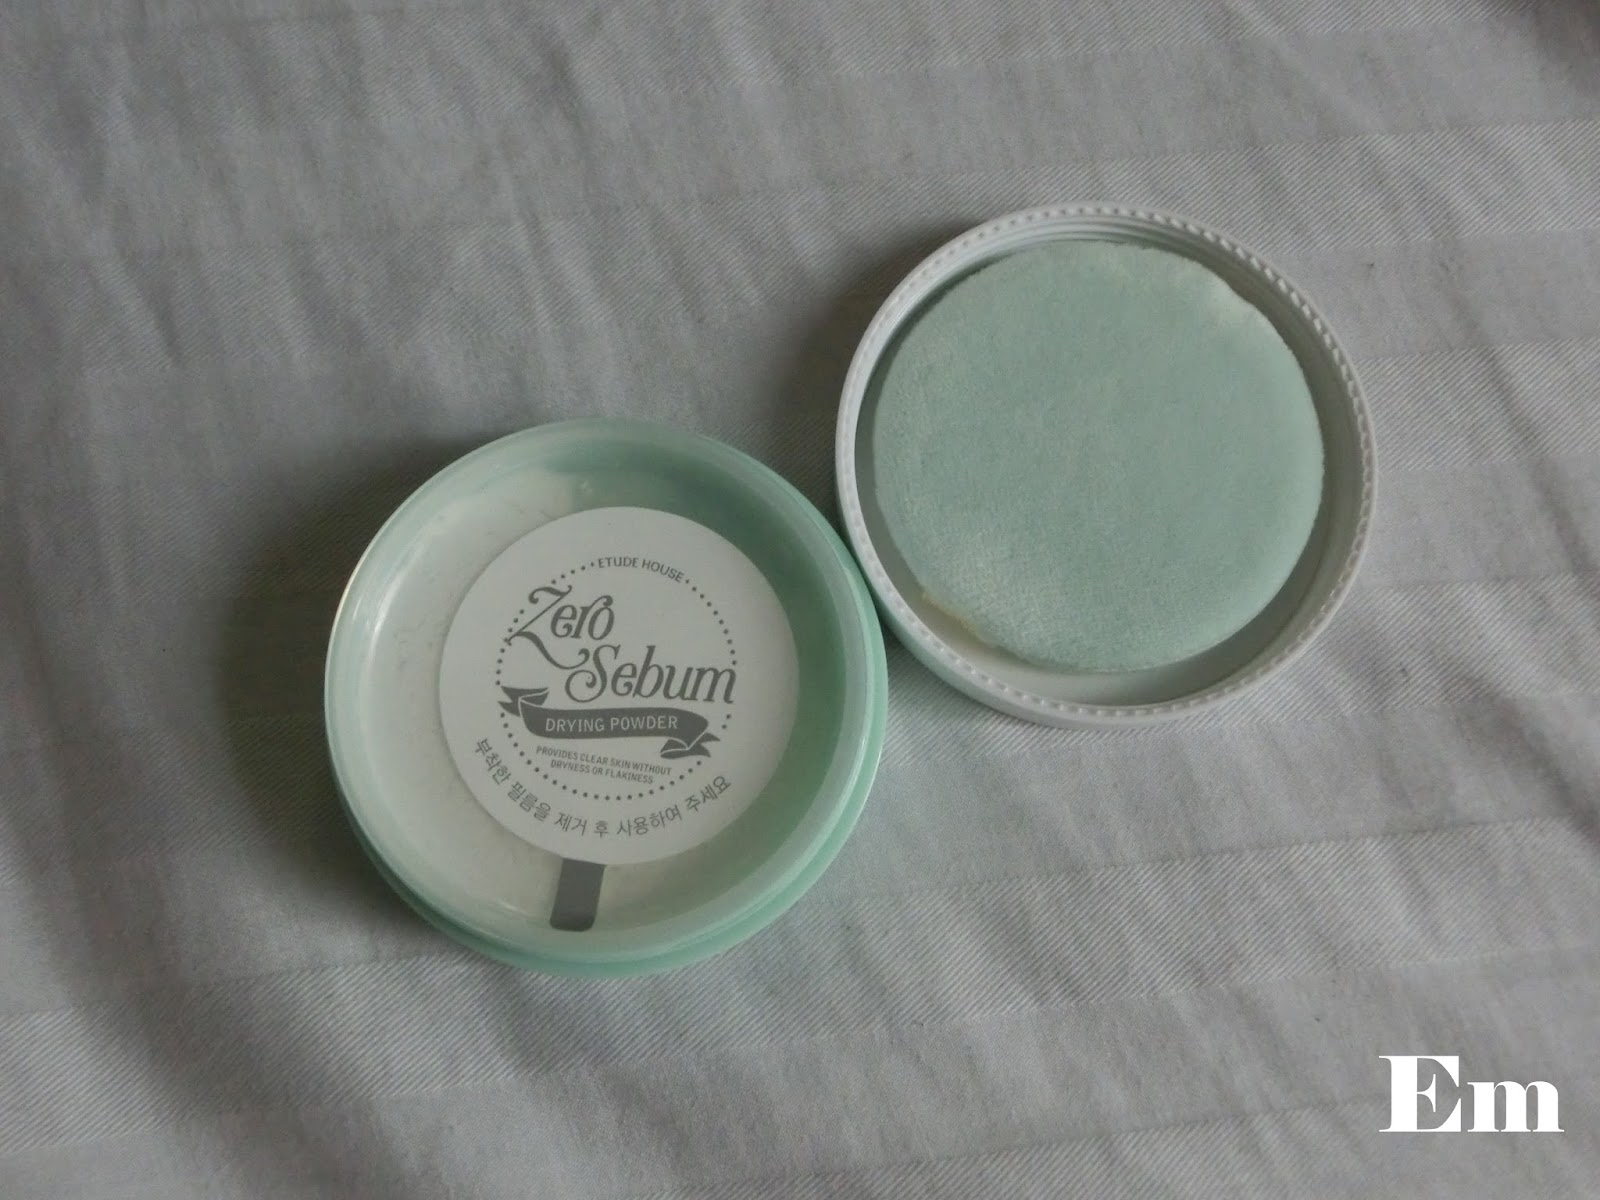 Em Photo Diary Etude House Zero Sebum Drying Powder Made Of Mineral To Dry Oily And Waxy Breakouts Below The Surface Efficiently